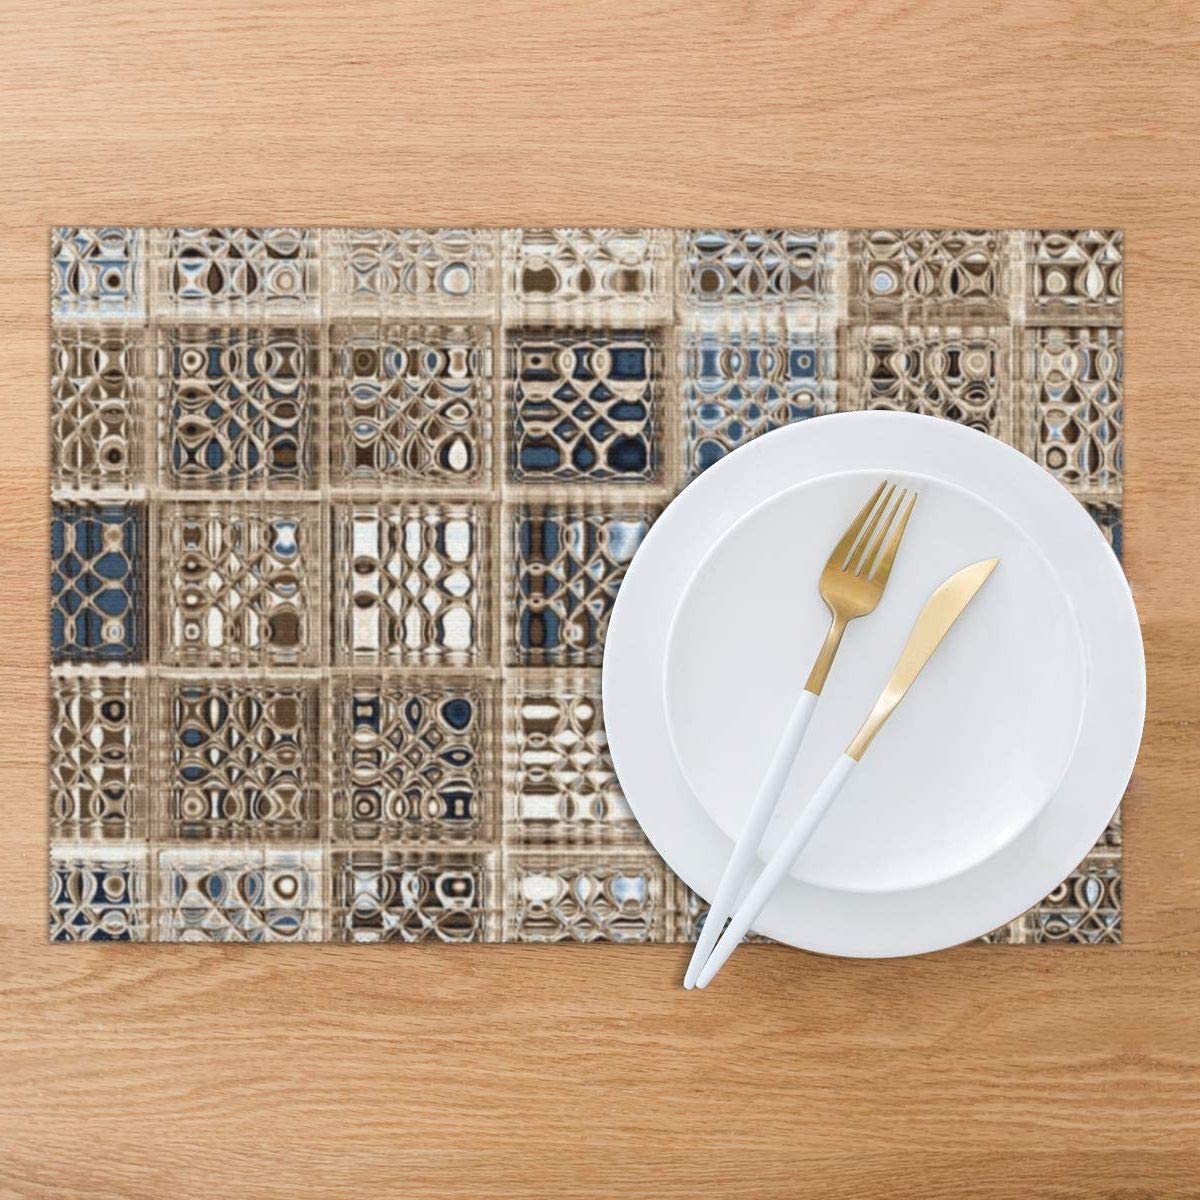 Slate Blue Brown Sari Mosaic Pattern Art Placemats Set of 6 for Dining Table Washable Woven Vinyl Placemat Non-Slip Heat Resistant Kitchen Table Mats